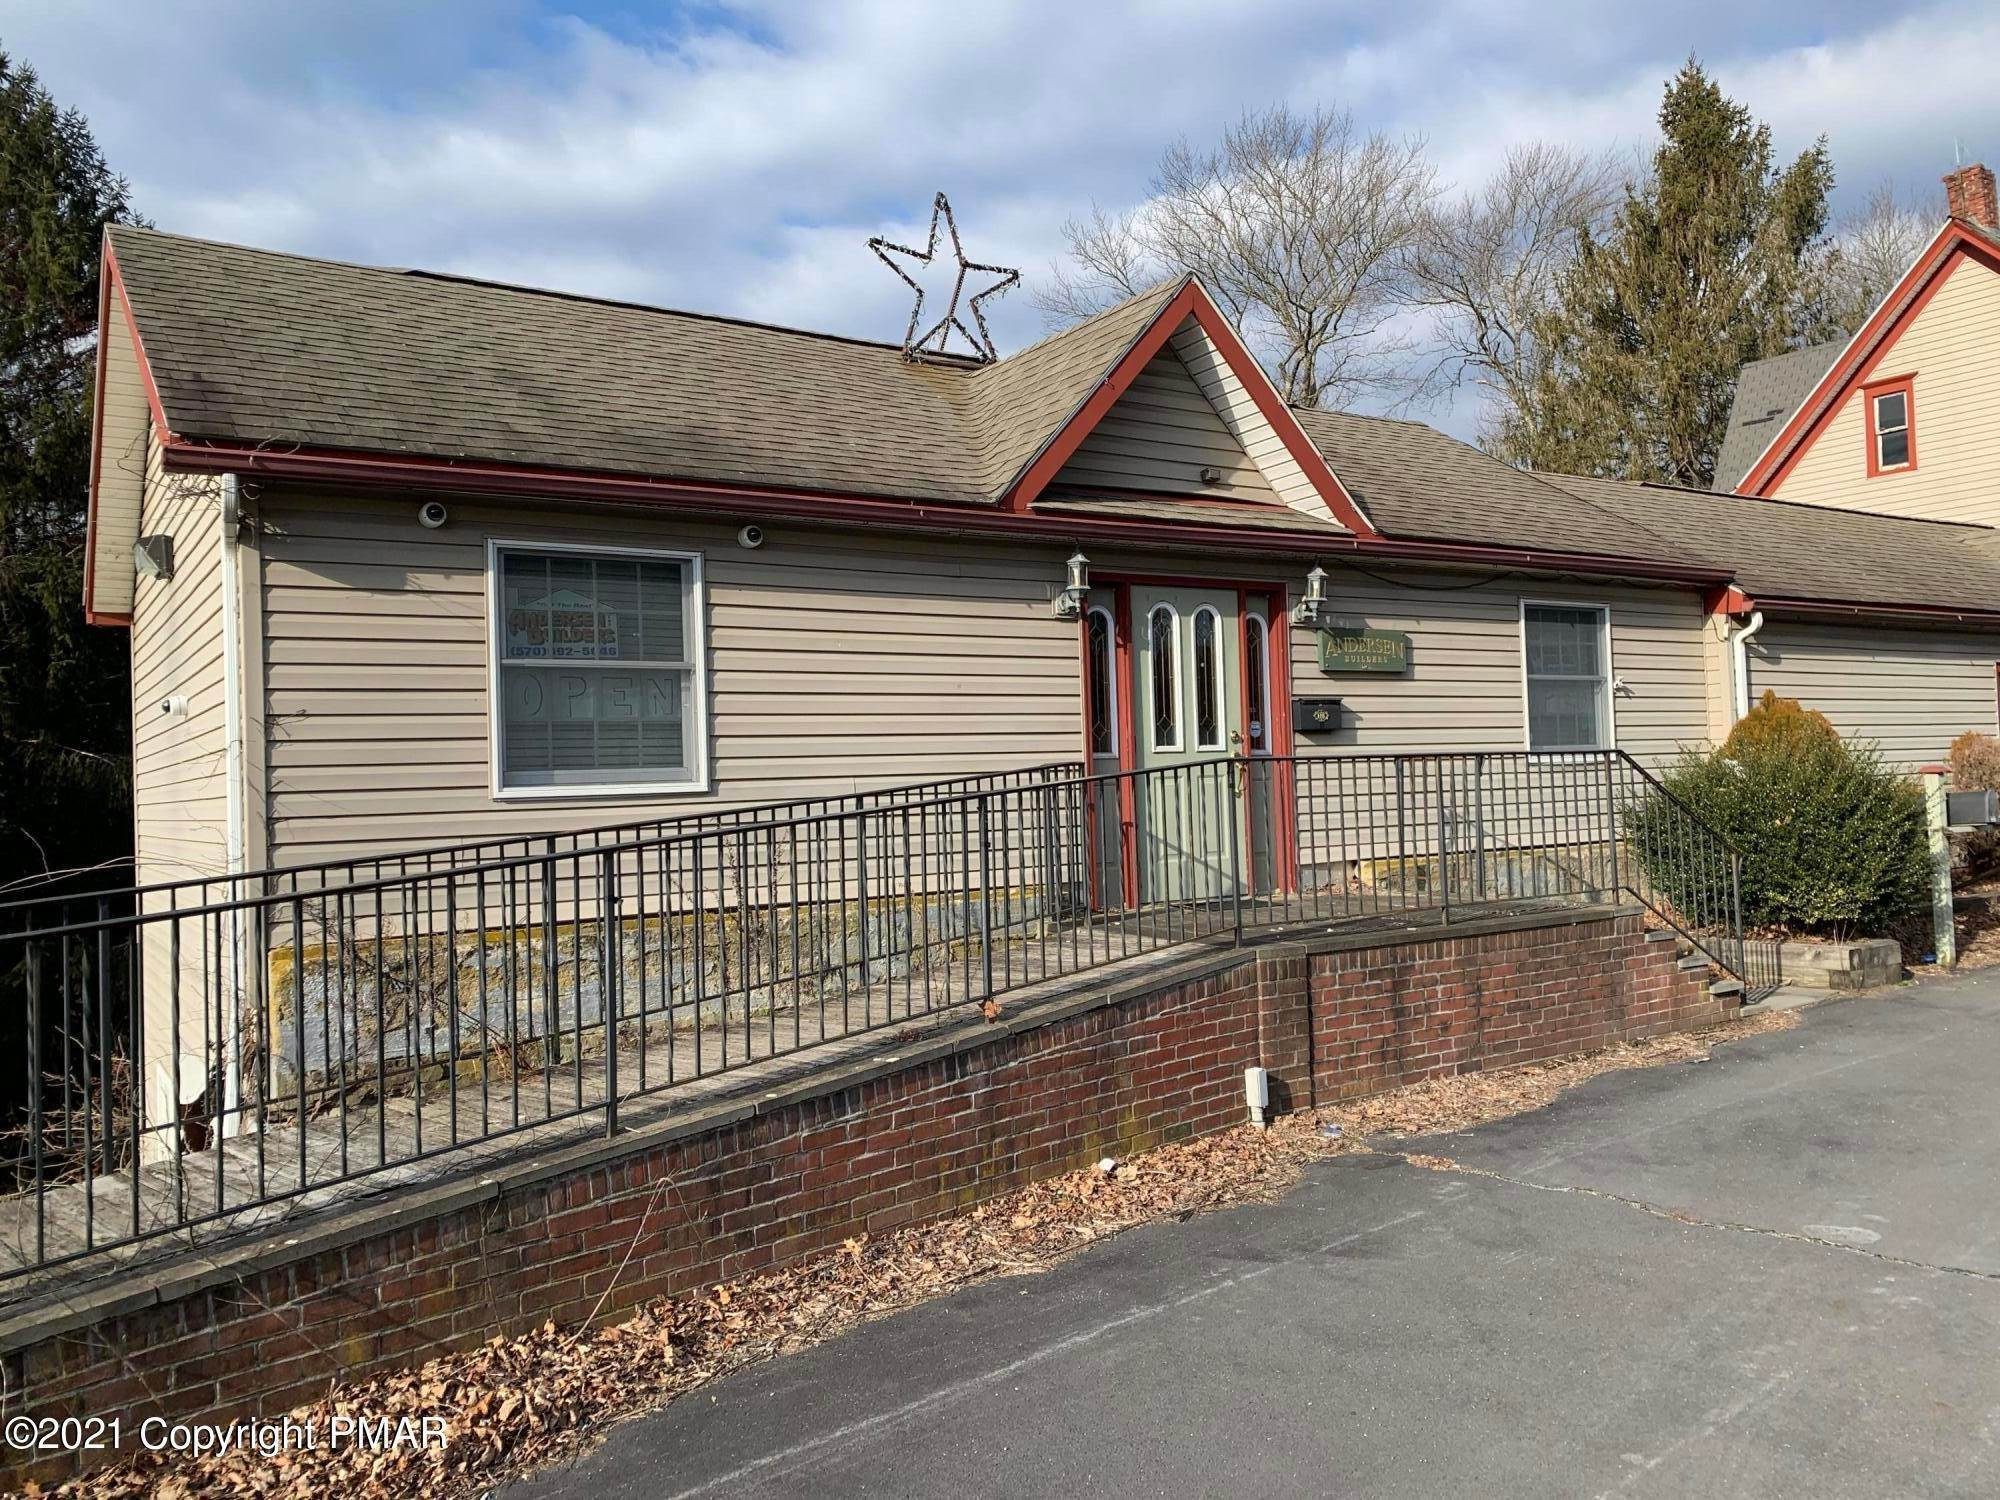 Commercial for Sale at 2523 Route 115 Effort, Pennsylvania 18330 United States